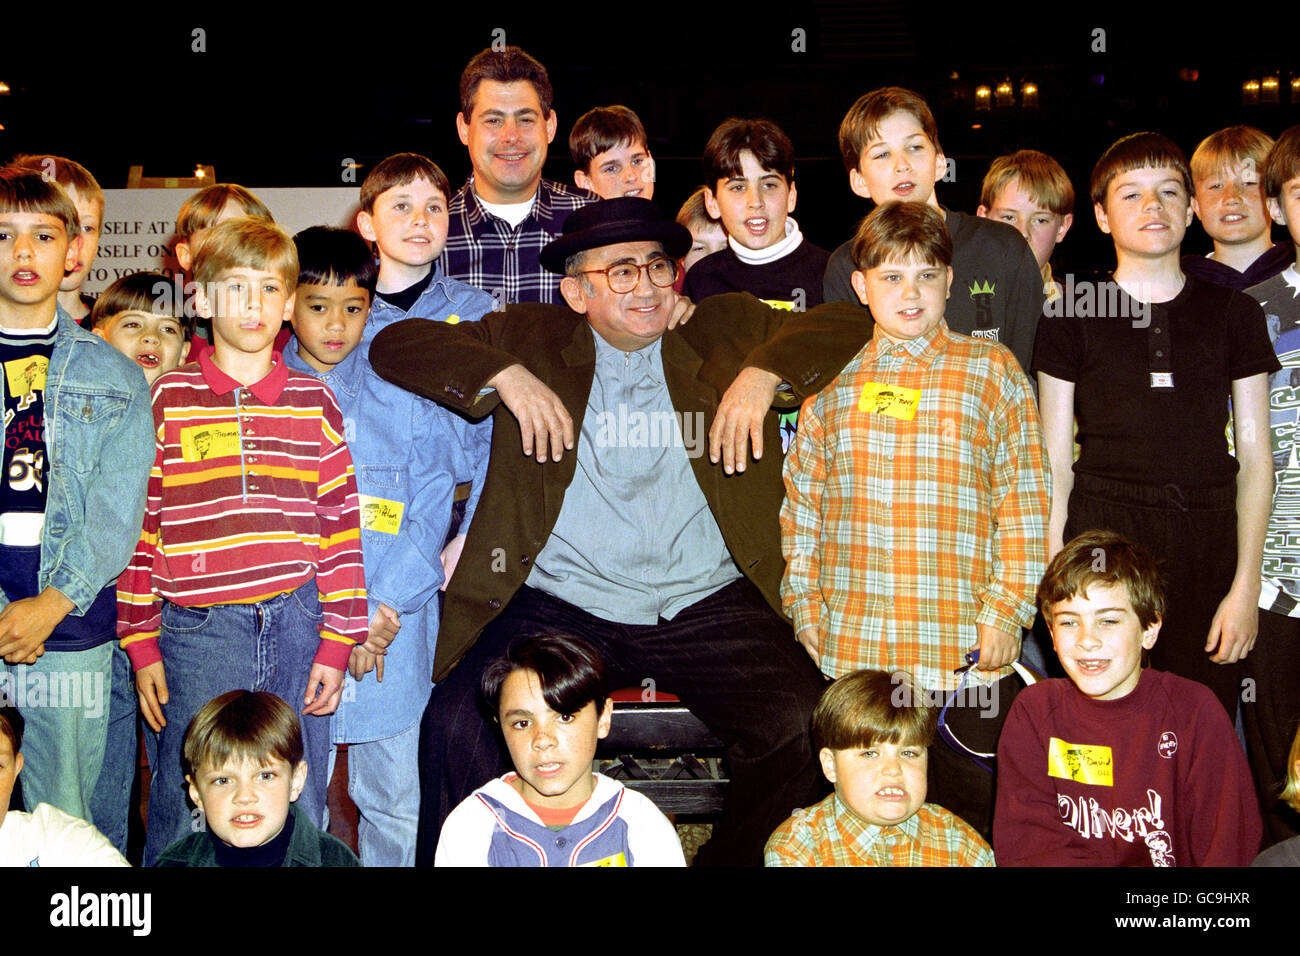 LIONEL BART WITH OLIVER HOPEFULS - Stock Image